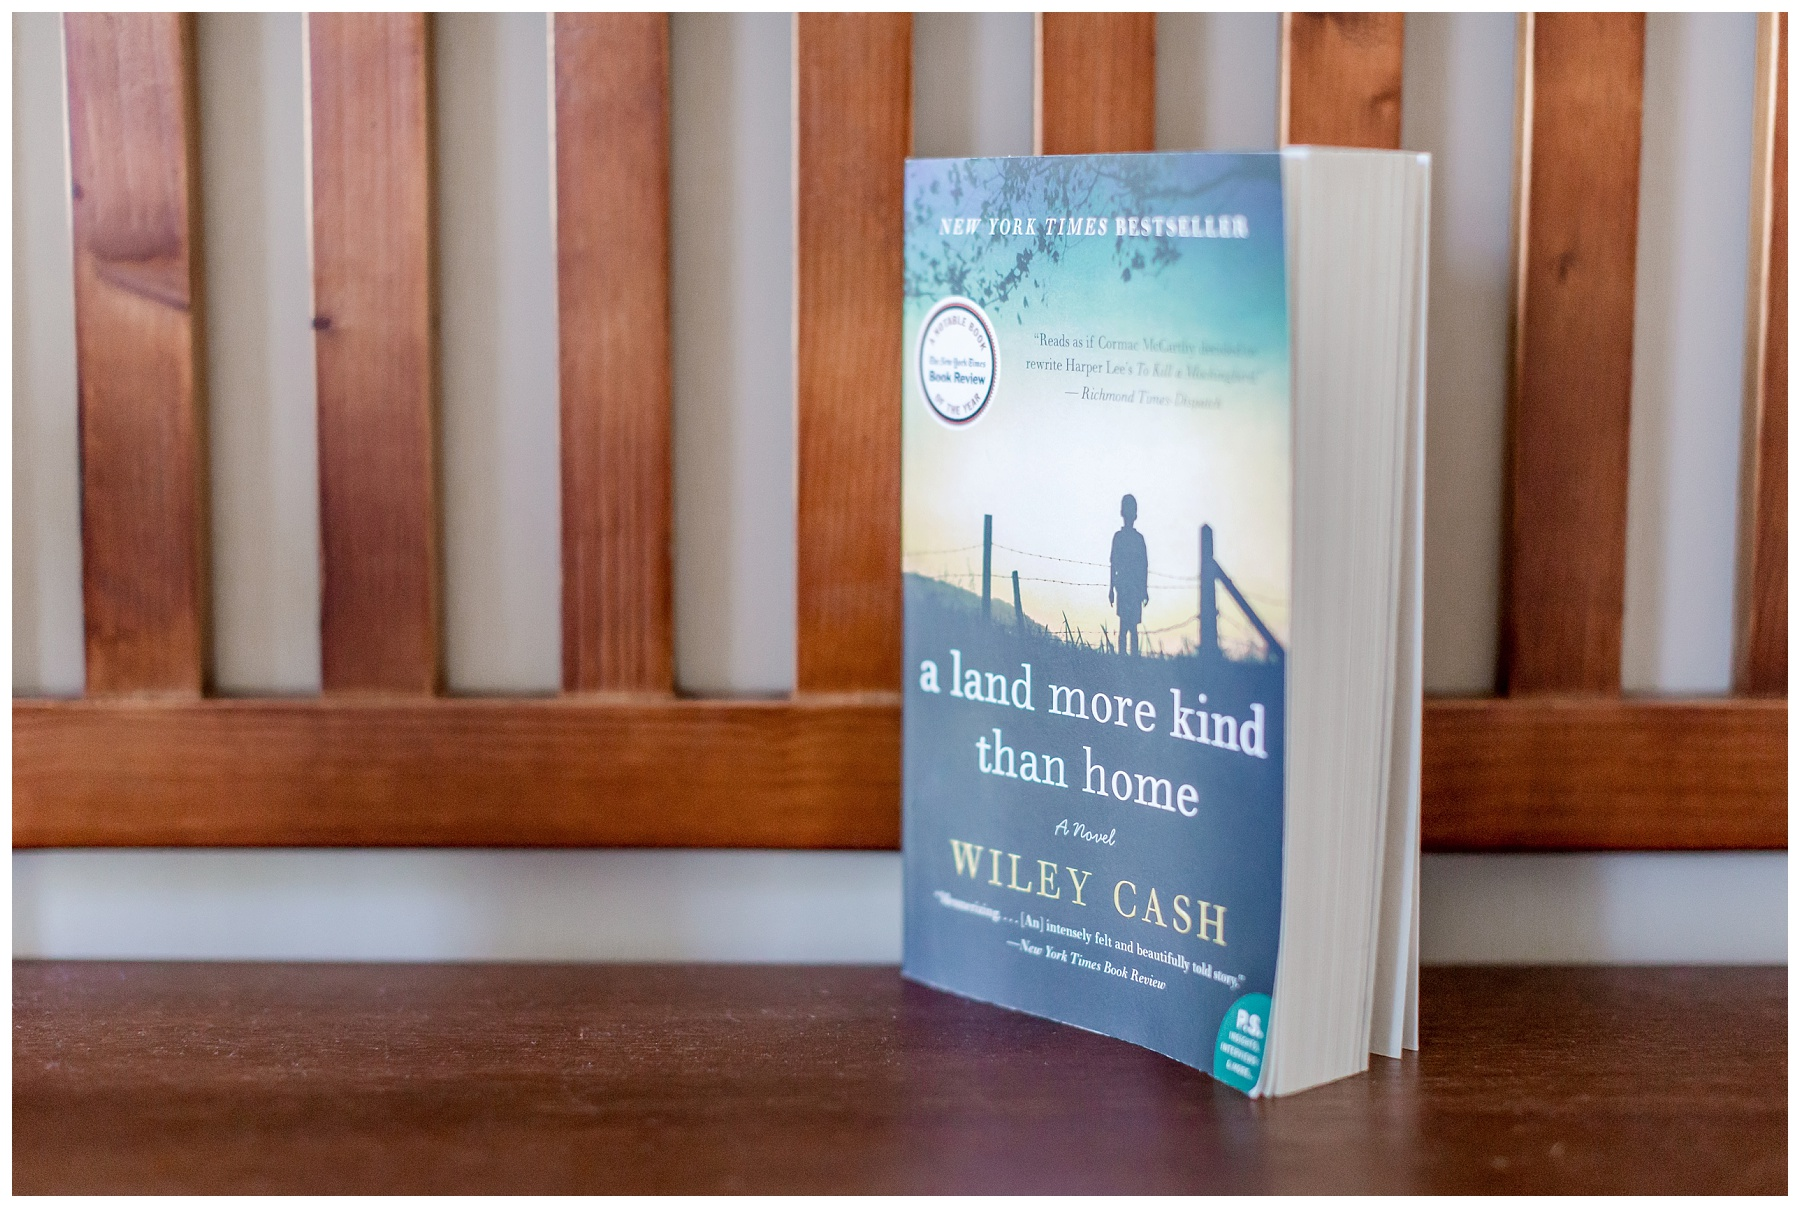 A-Land-More-Kind-Than-Home-book-review-photographer-blog0817-Elizabeth-Ladean-Photography-photo_2073.jpg